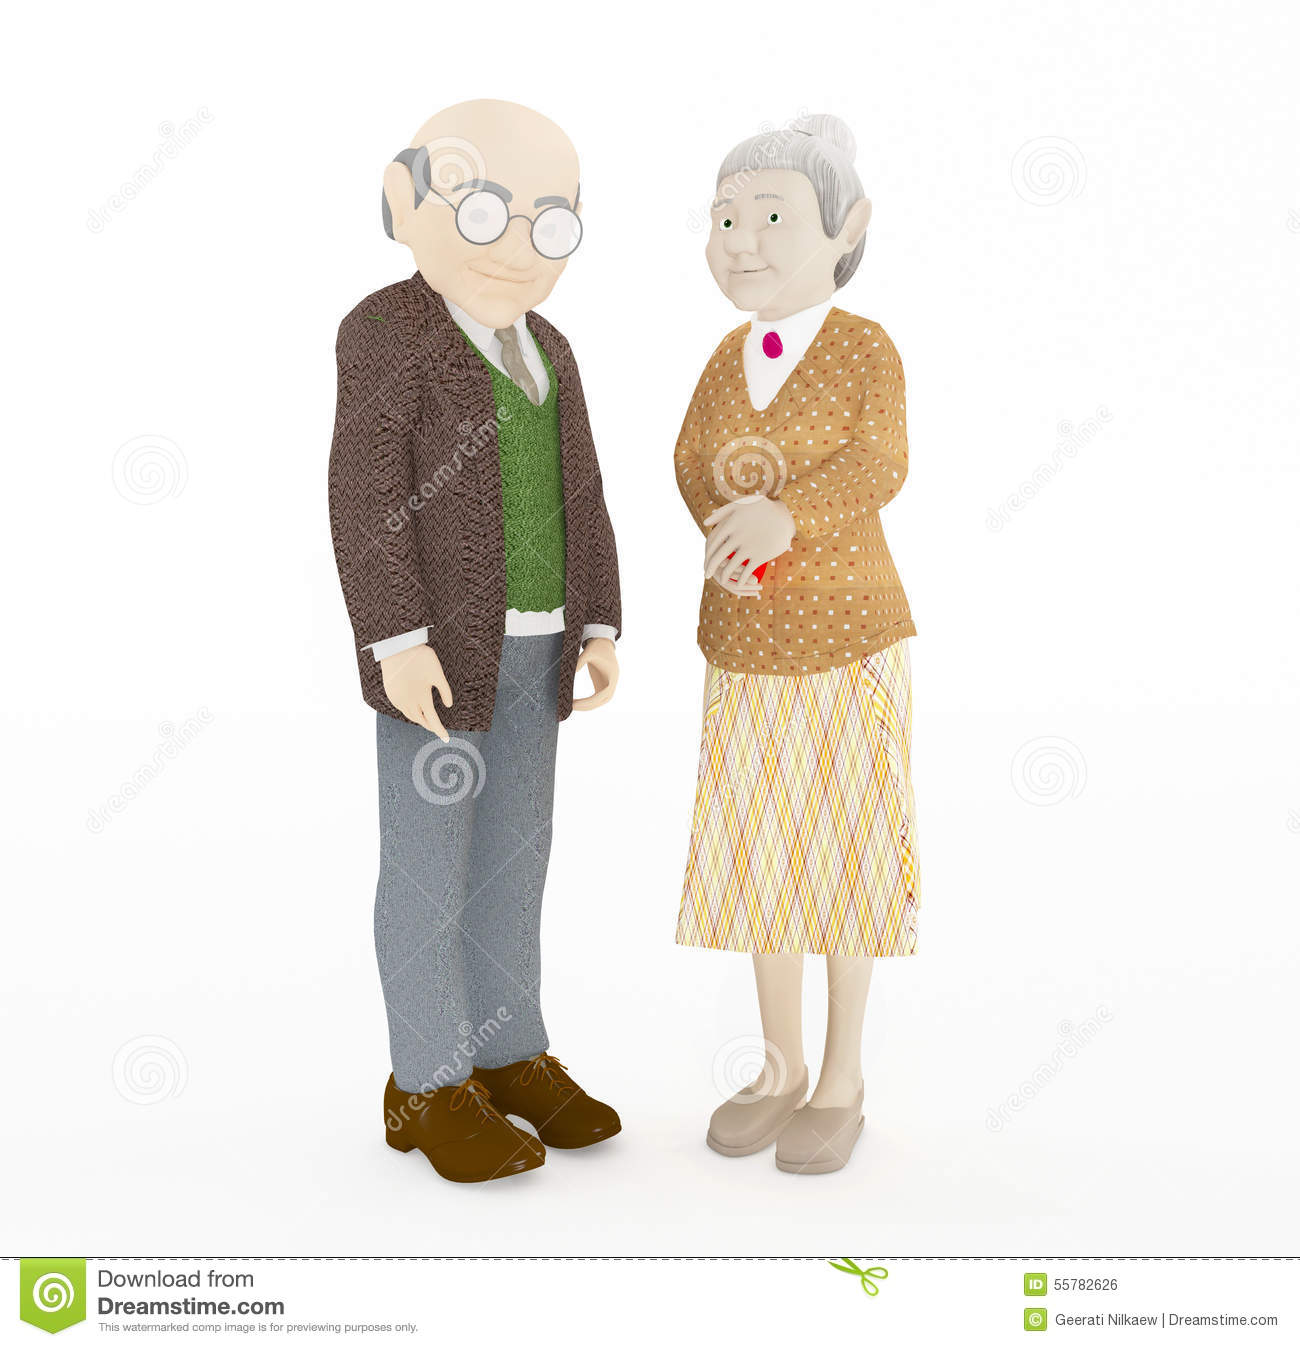 Stock illustrations senior citizen lady with a sign stock clipart - 3d Rendering Old Couple Stock Illustration Image 55782626